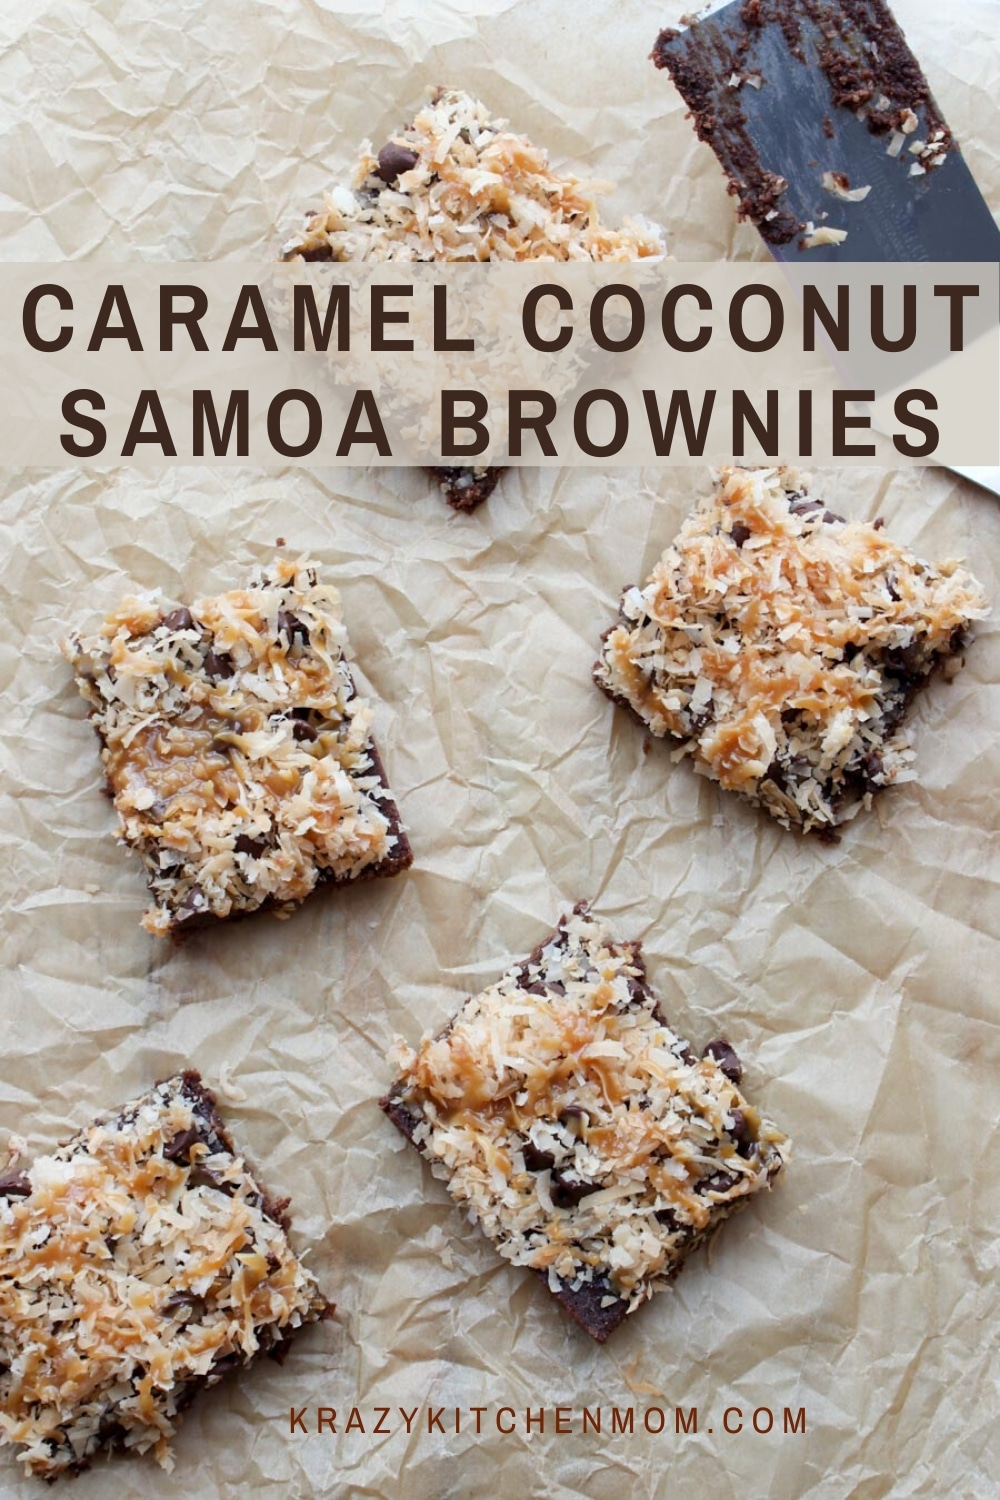 Caramel Coconut Samoa Brownies are chewy chocolate brownies from a box mix that are topped with toasted coconut, caramel, and chocolate.  via @krazykitchenmom